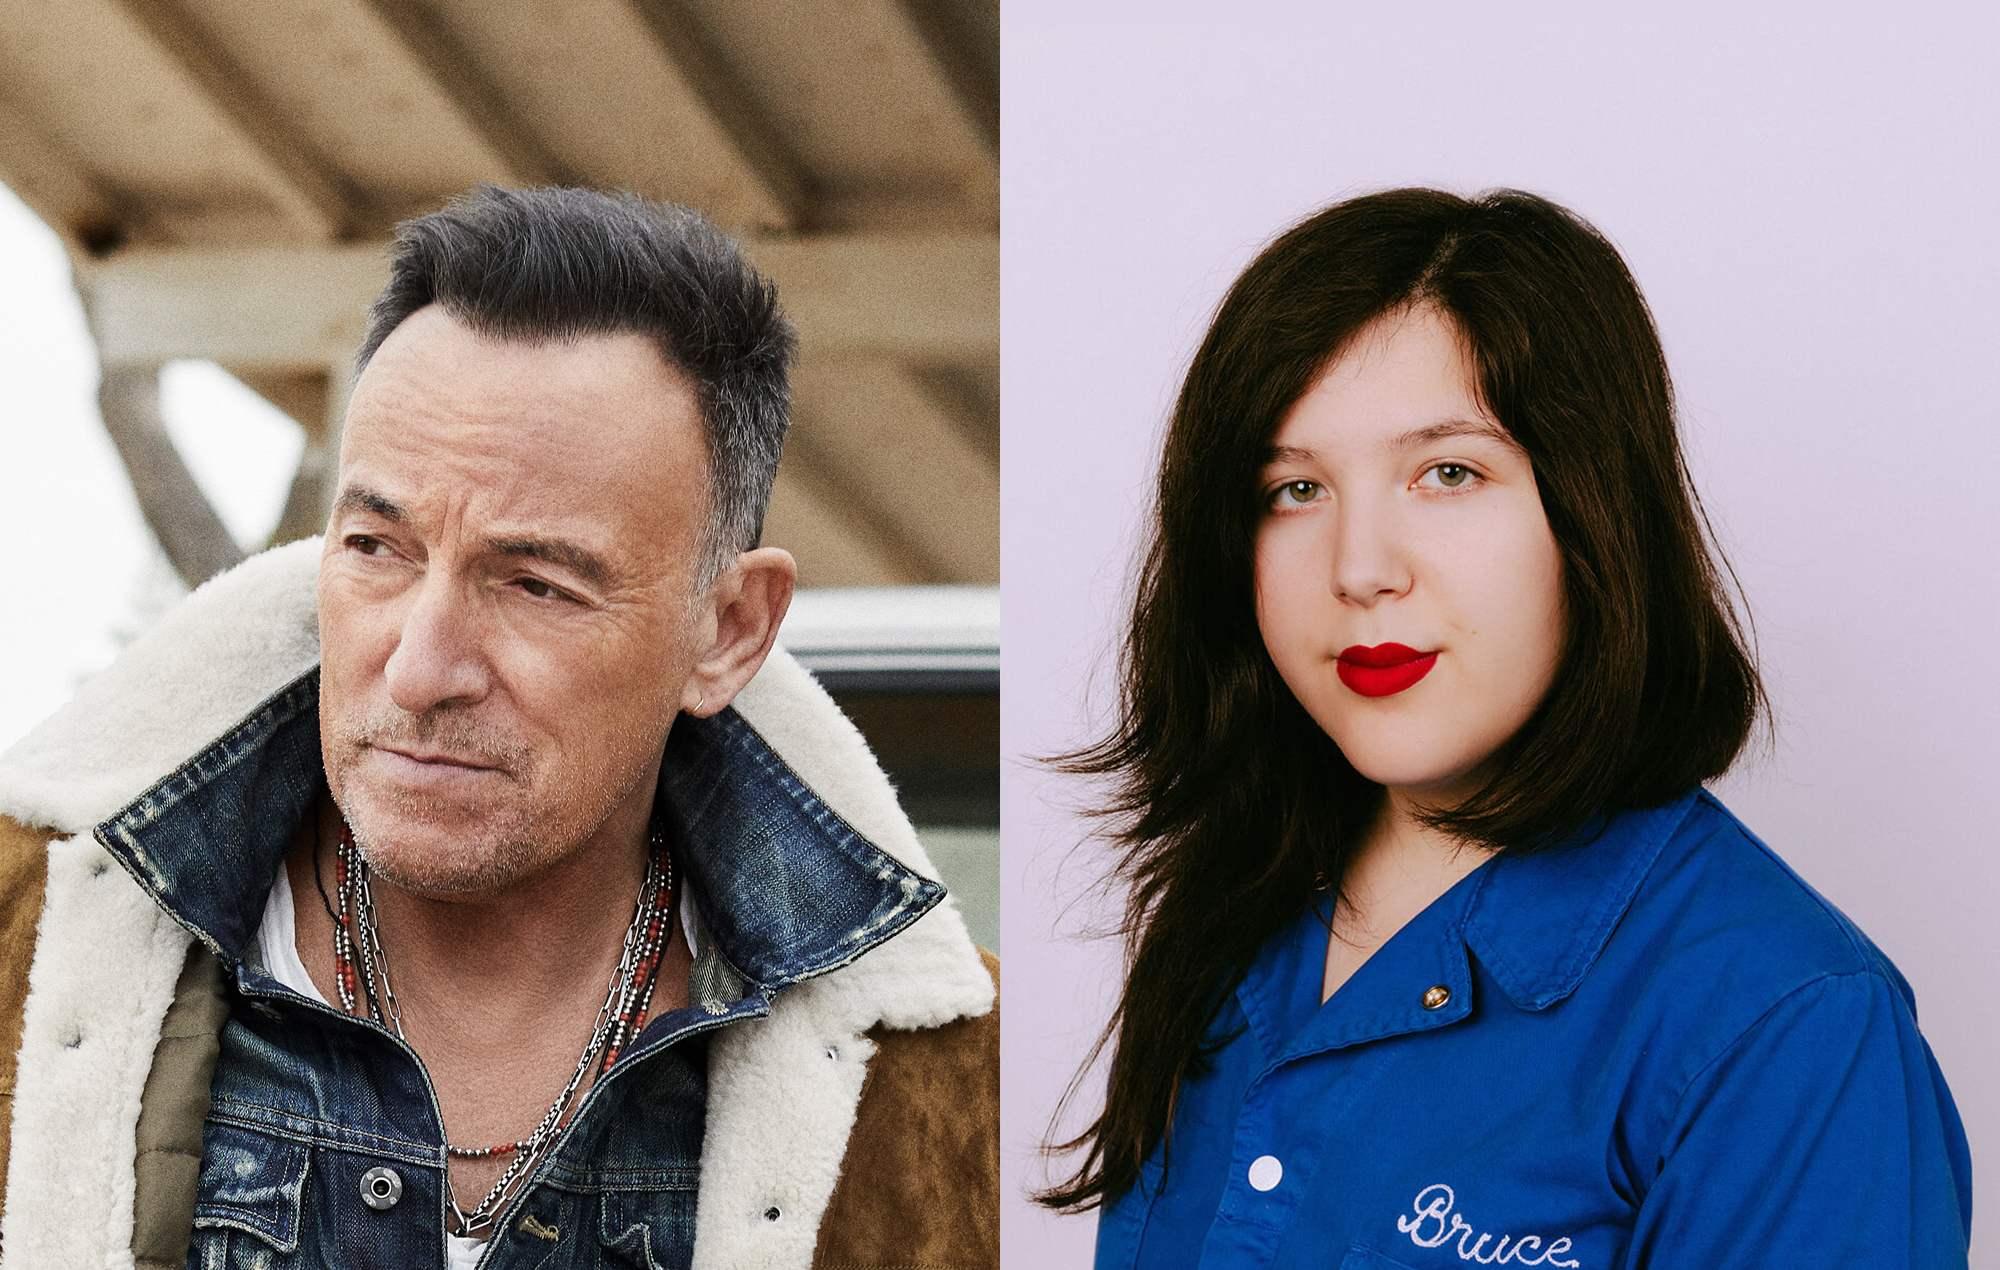 Lucy Dacus wishes Bruce Springsteen – and her dad – happy birthday with 'Dancing In The Dark' cover